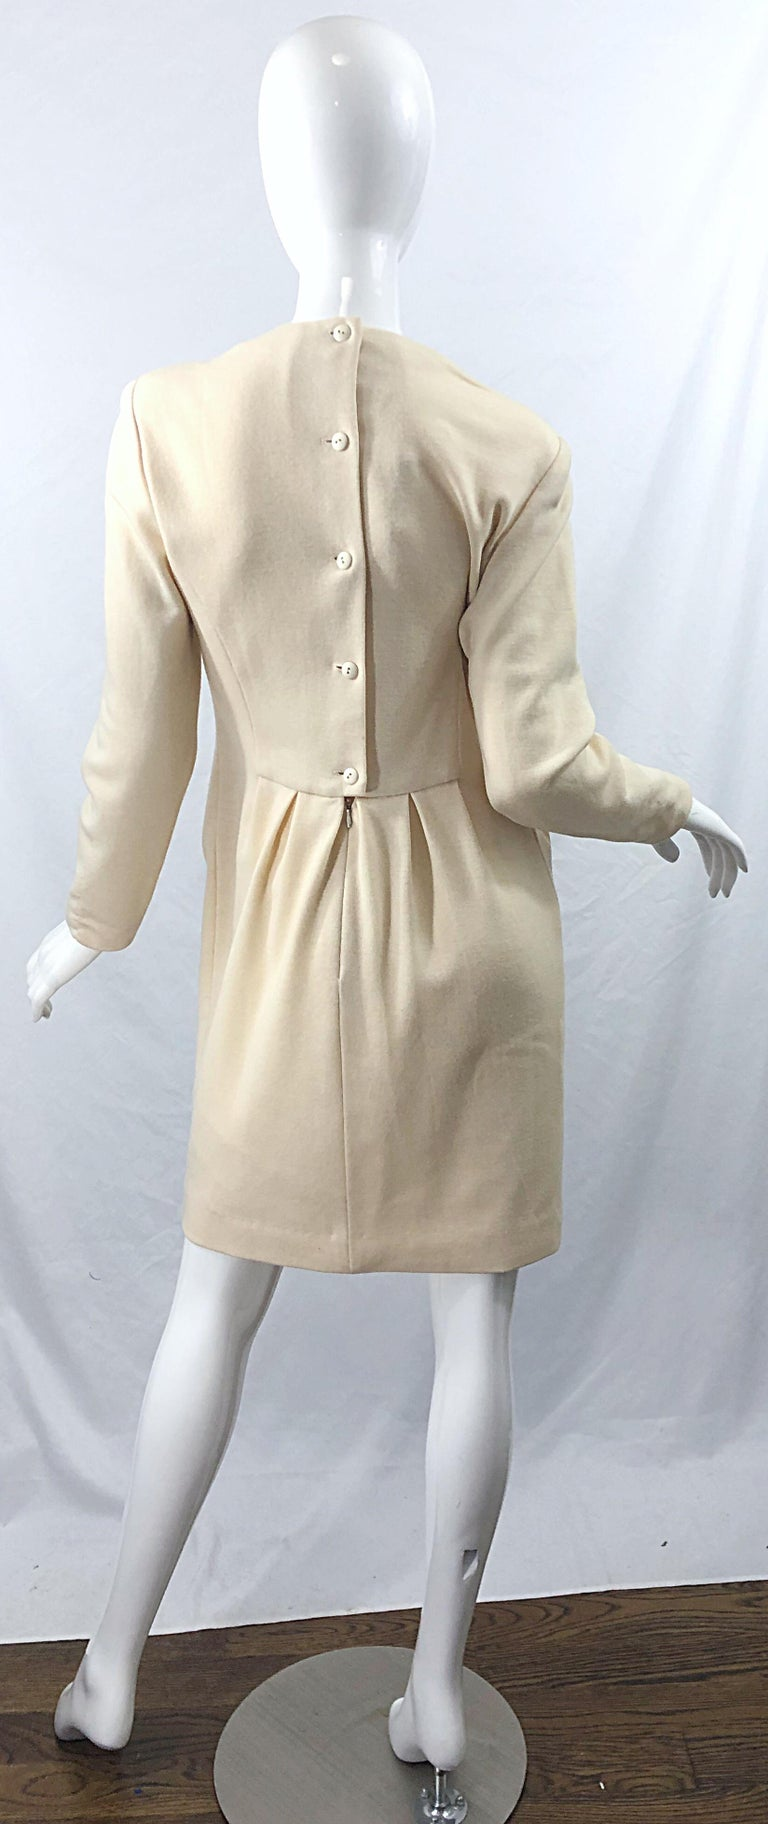 Vintage Geoffrey Beene for Bergdorf Goodman Size 10 Ivory Off White Wool Dress For Sale 2